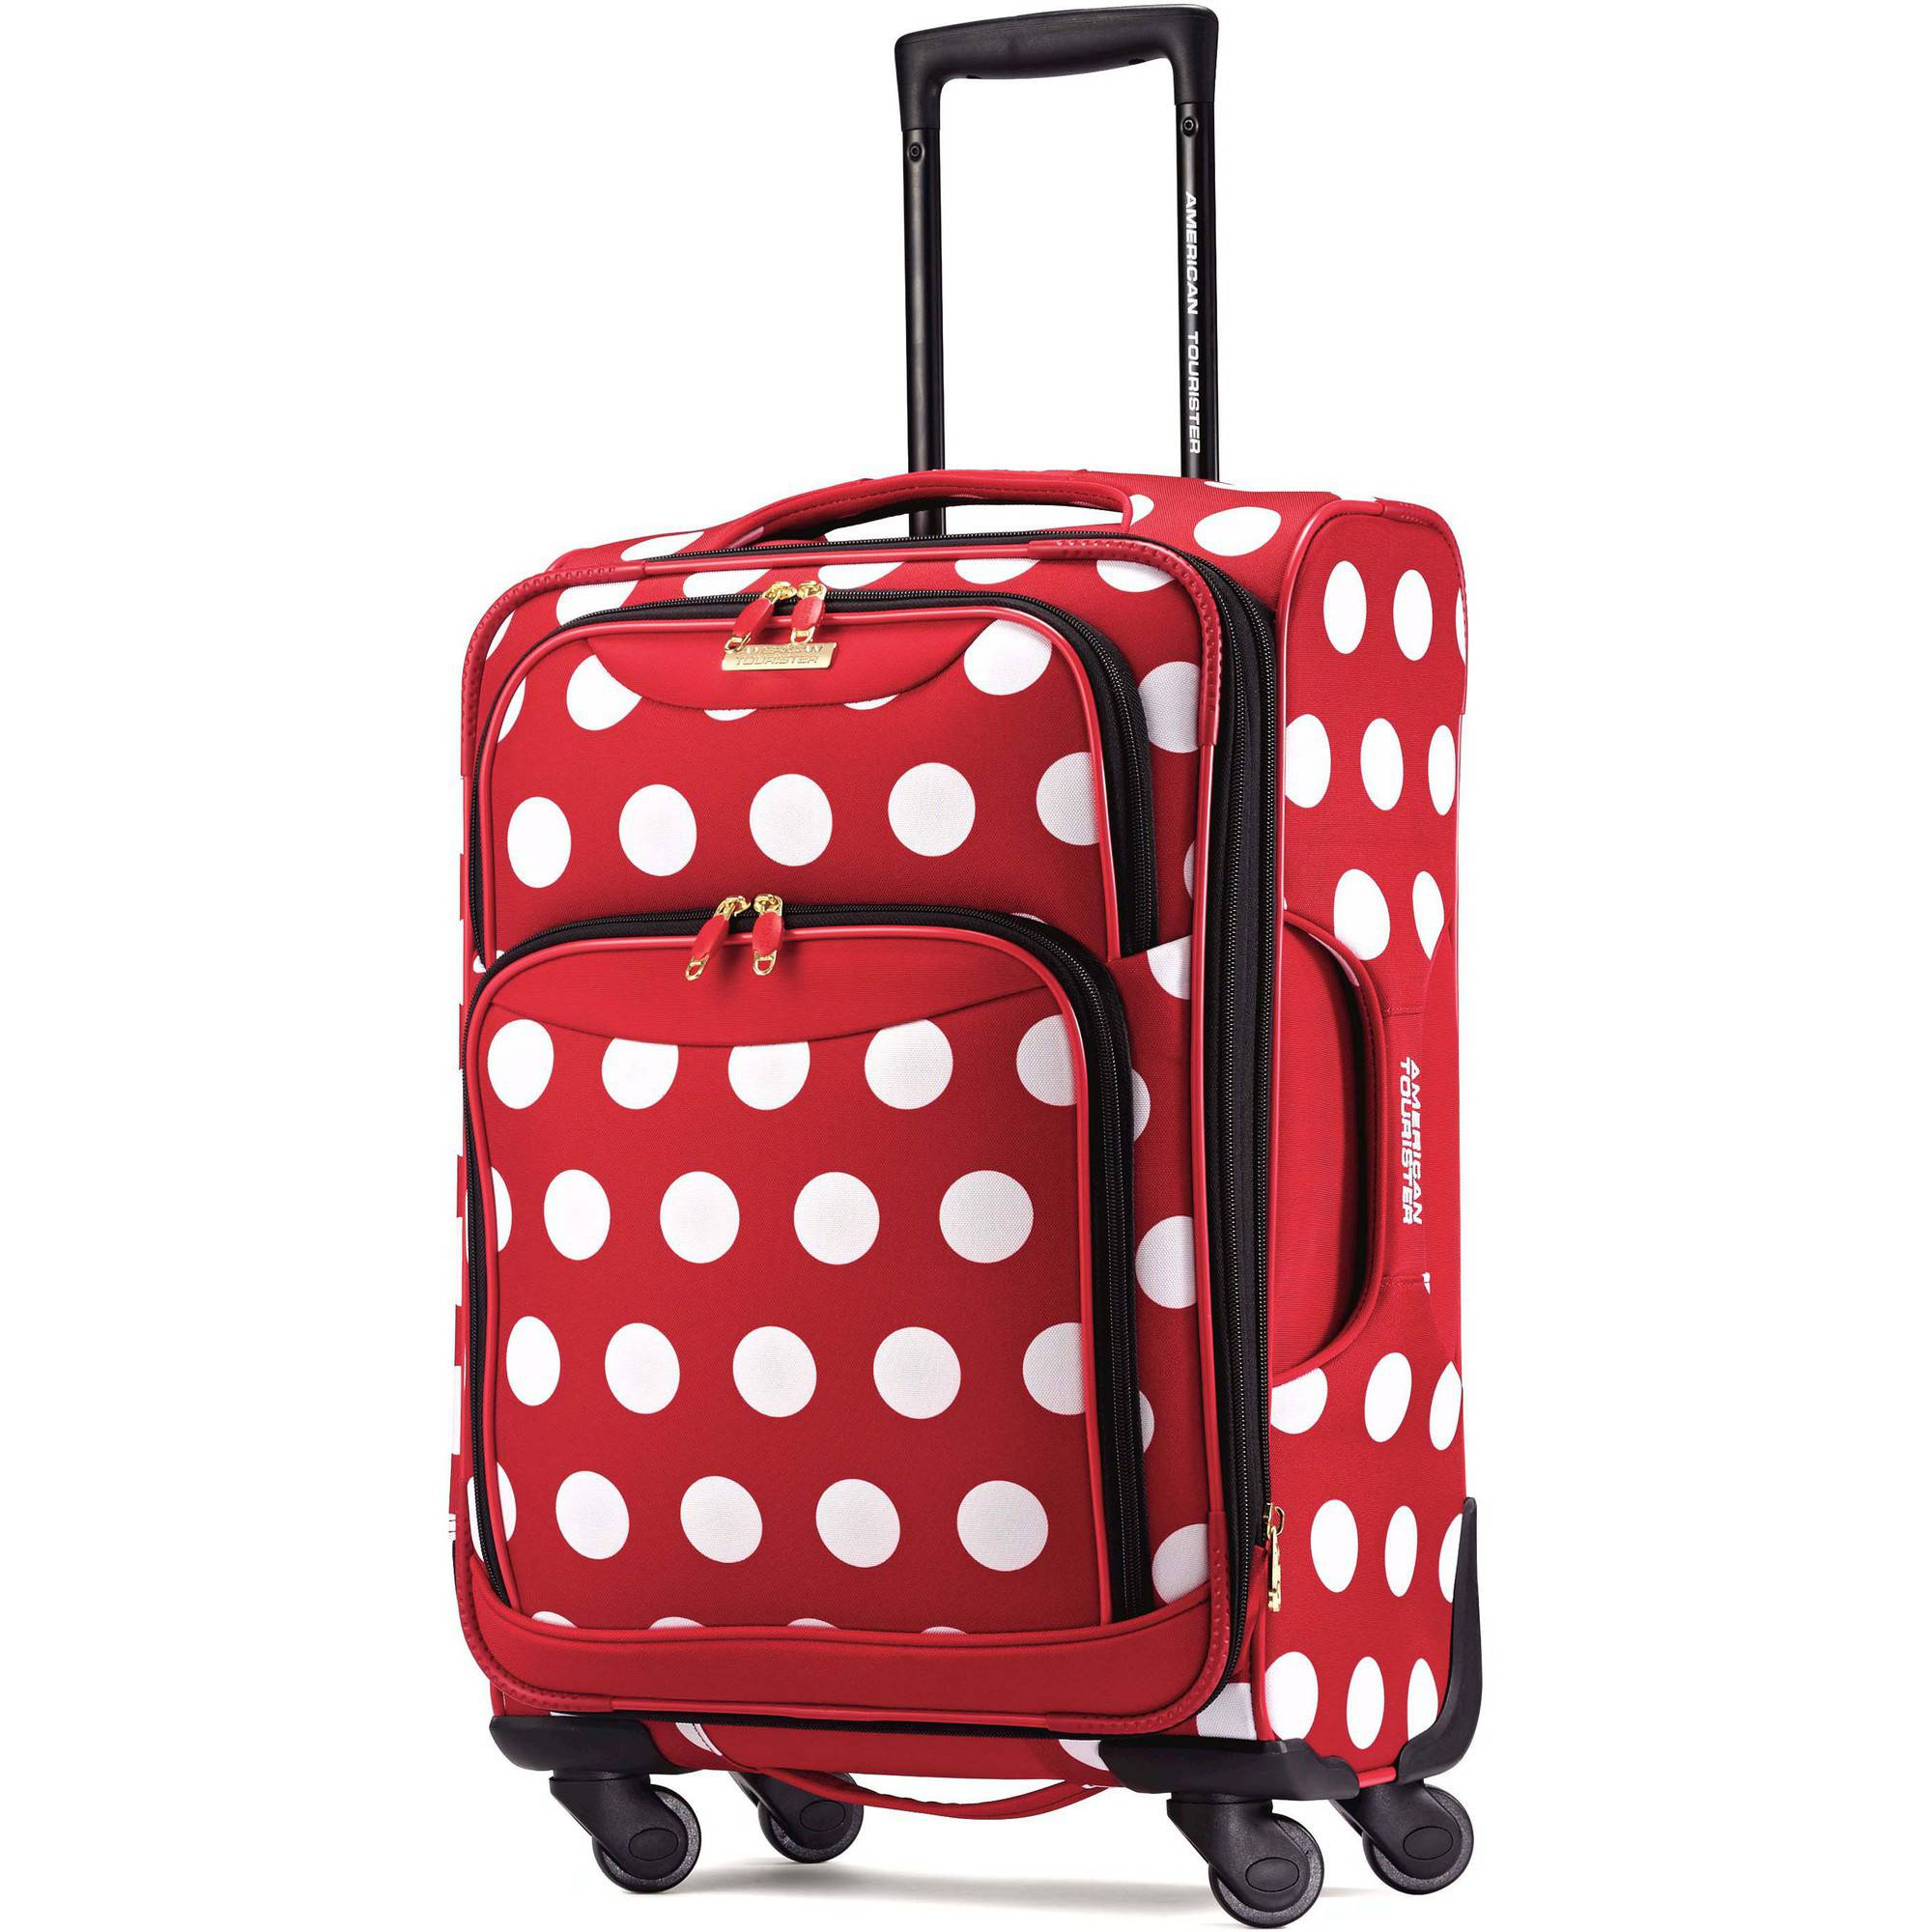 American Tourister Disney Minnie Mouse Polka Dot Spinner Soft Side Suitcase